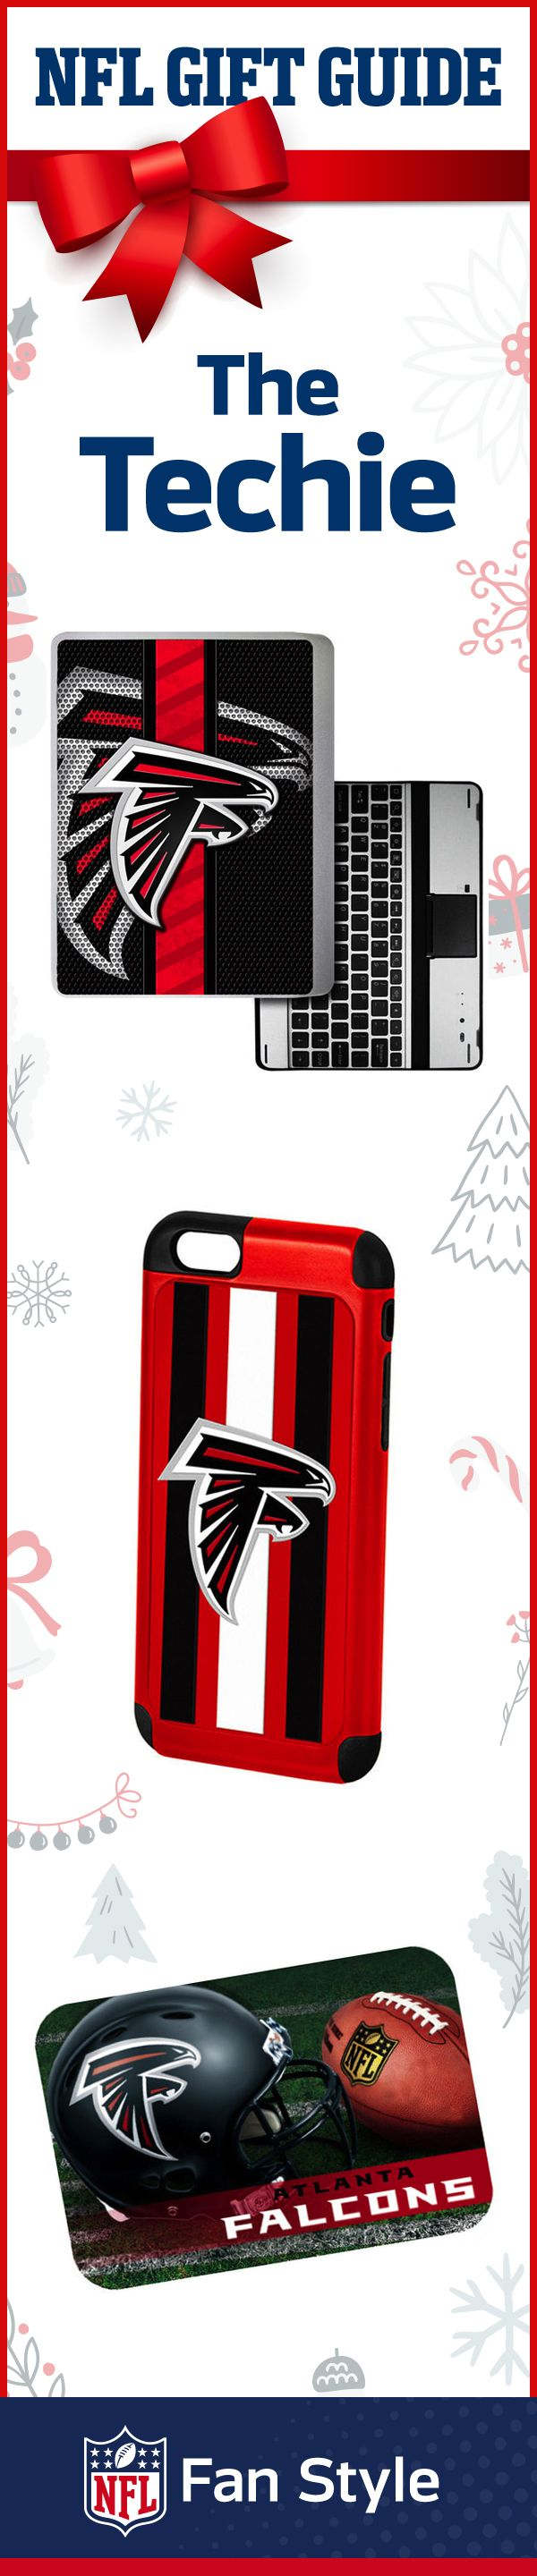 For the fan who always needs to be on top of the score, this Atlanta Falcons gift set has everything he/she needs to stay connected.